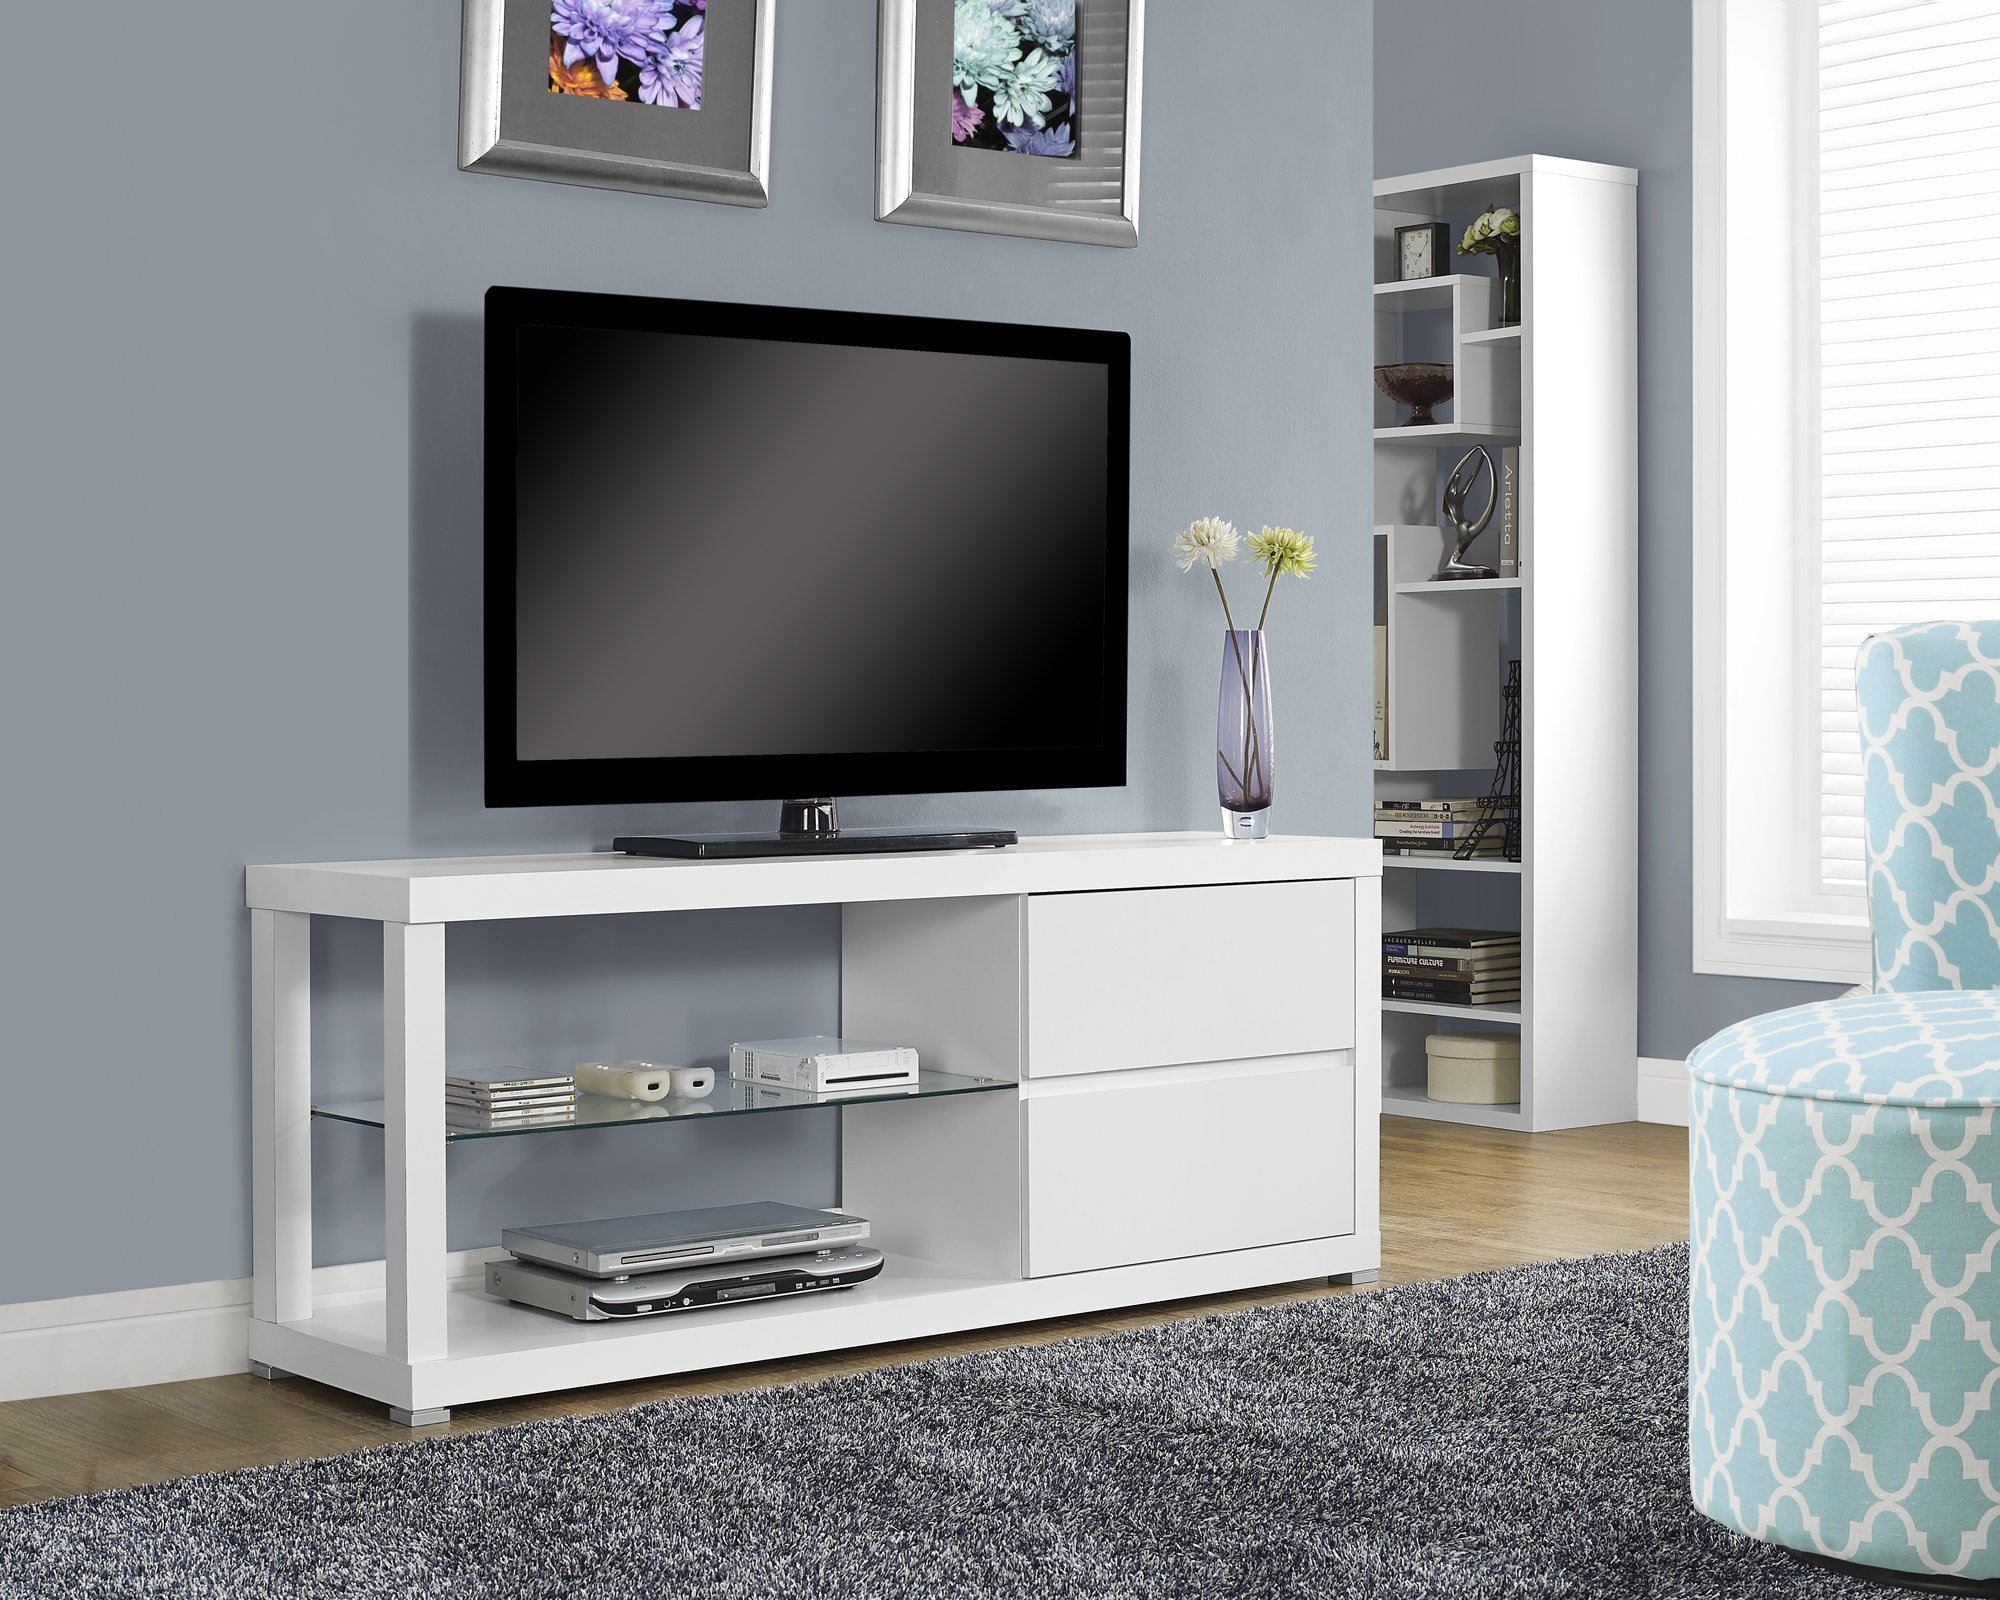 Monarch Specialties White Hollow-Core TV Console/Tempered Glass, 60-Inch